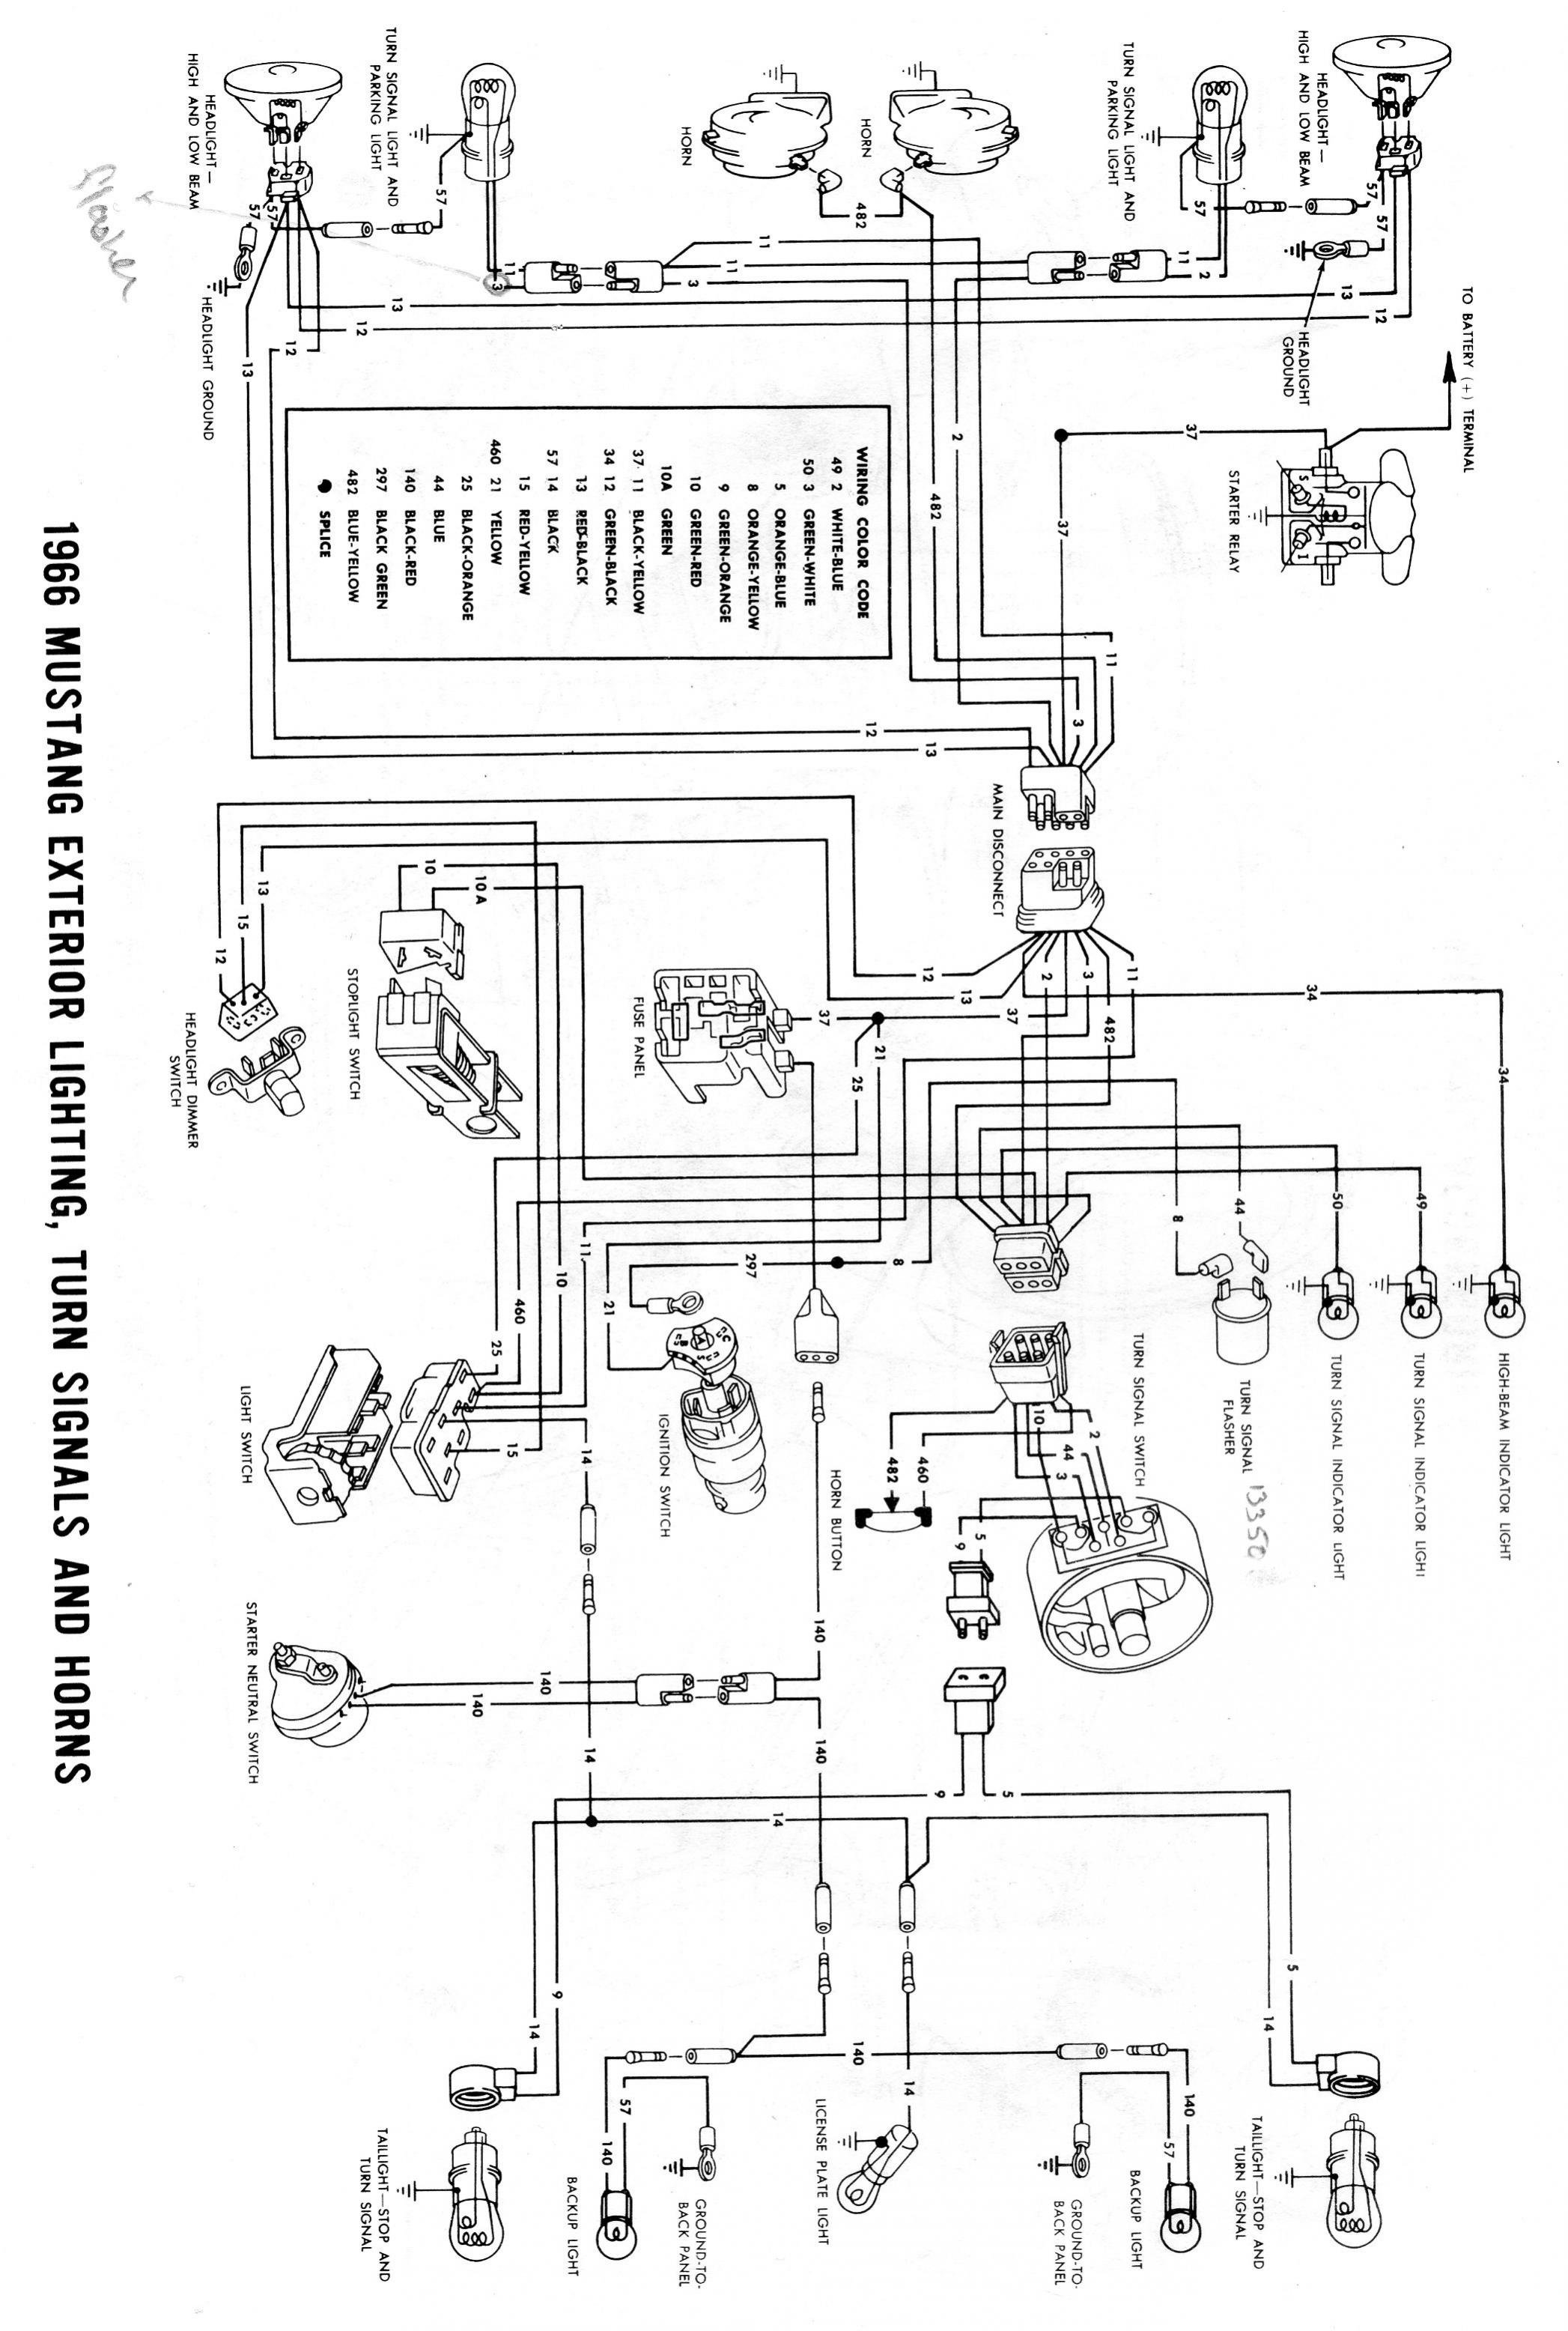 Turn Signal Flasher Relay Wiring Diagram